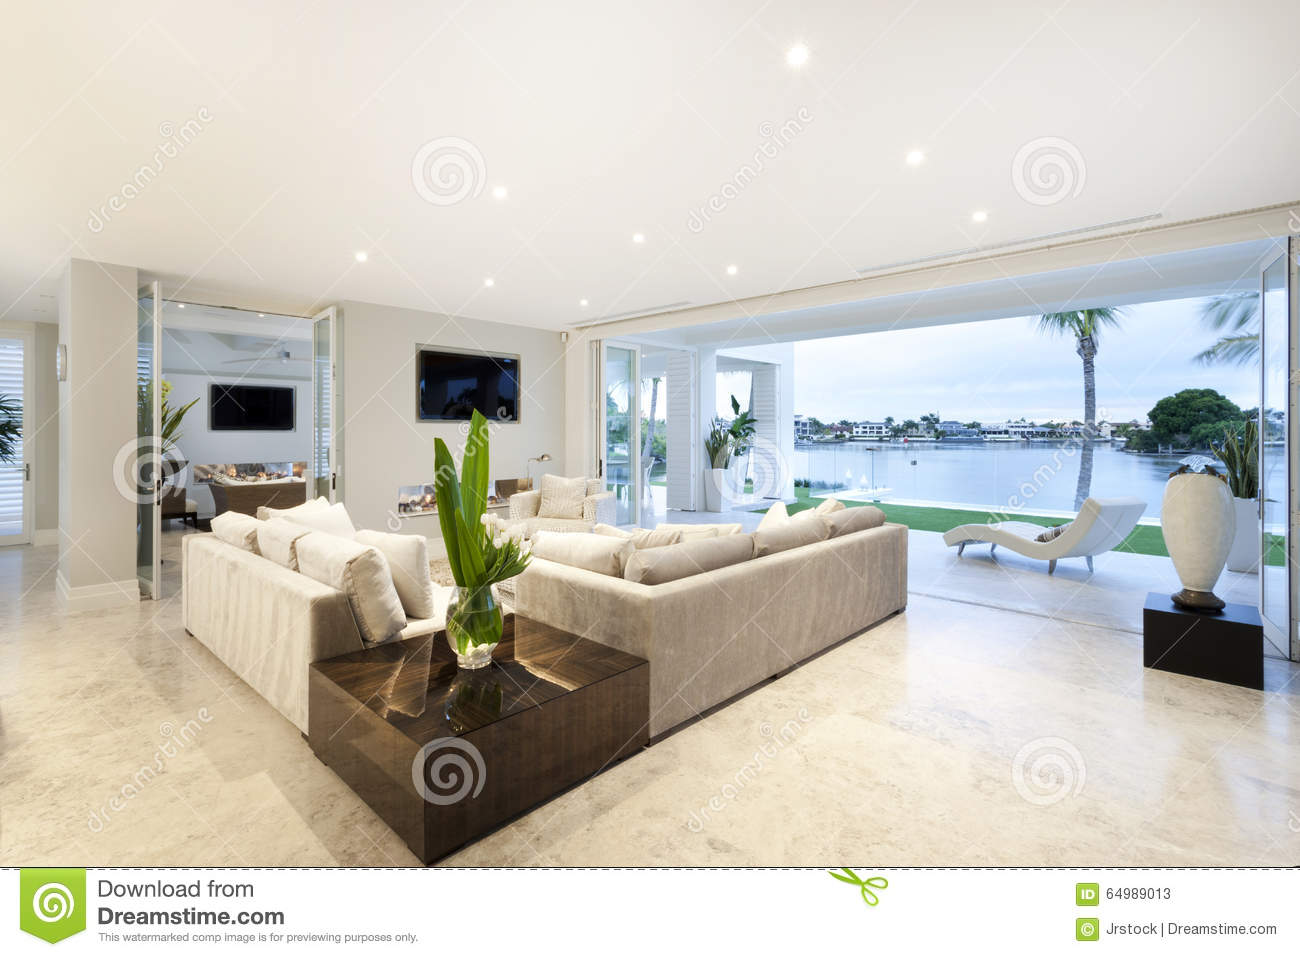 Beau Salon Beautiful Living Room Open To A Yard Stock Image Image Of